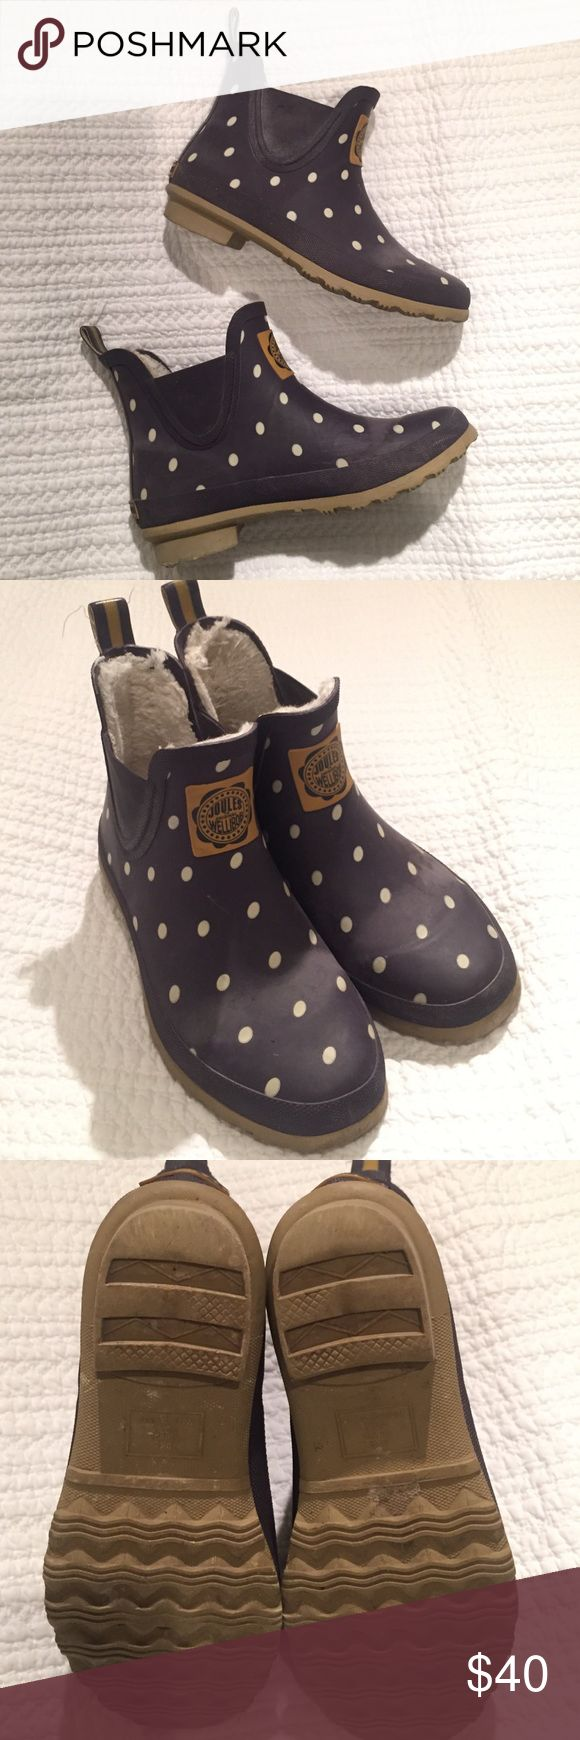 Joules Rain Boots Joules polka dot blue and white rain boots. Size is US 7, euro 38, I am a 7.5 and they fit me. Really cute!  Have been worn but still in great shape. Rubber on front has a faded line as seen in second picture. Joules Shoes Winter & Rain Boots